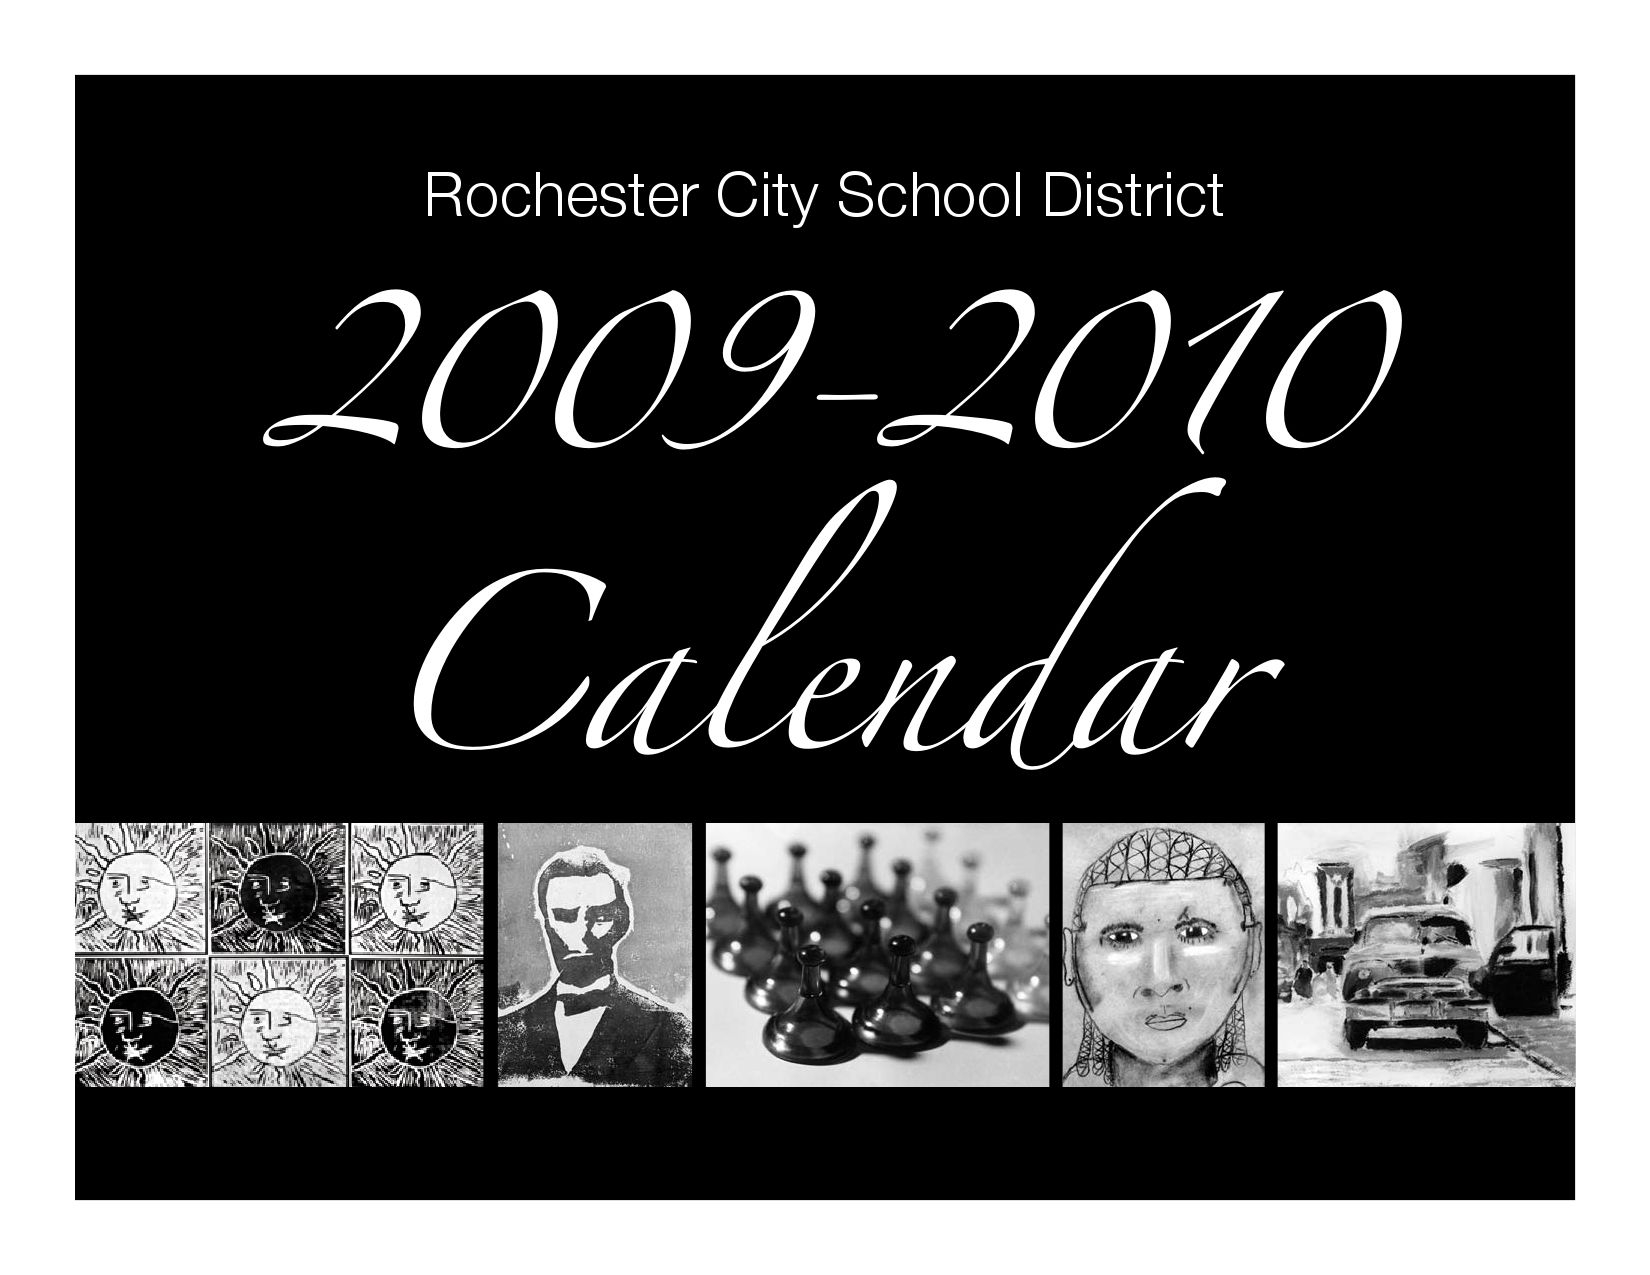 Rochester City School District Calendar 2009-2010Sam regarding Rochester City School District Calendar